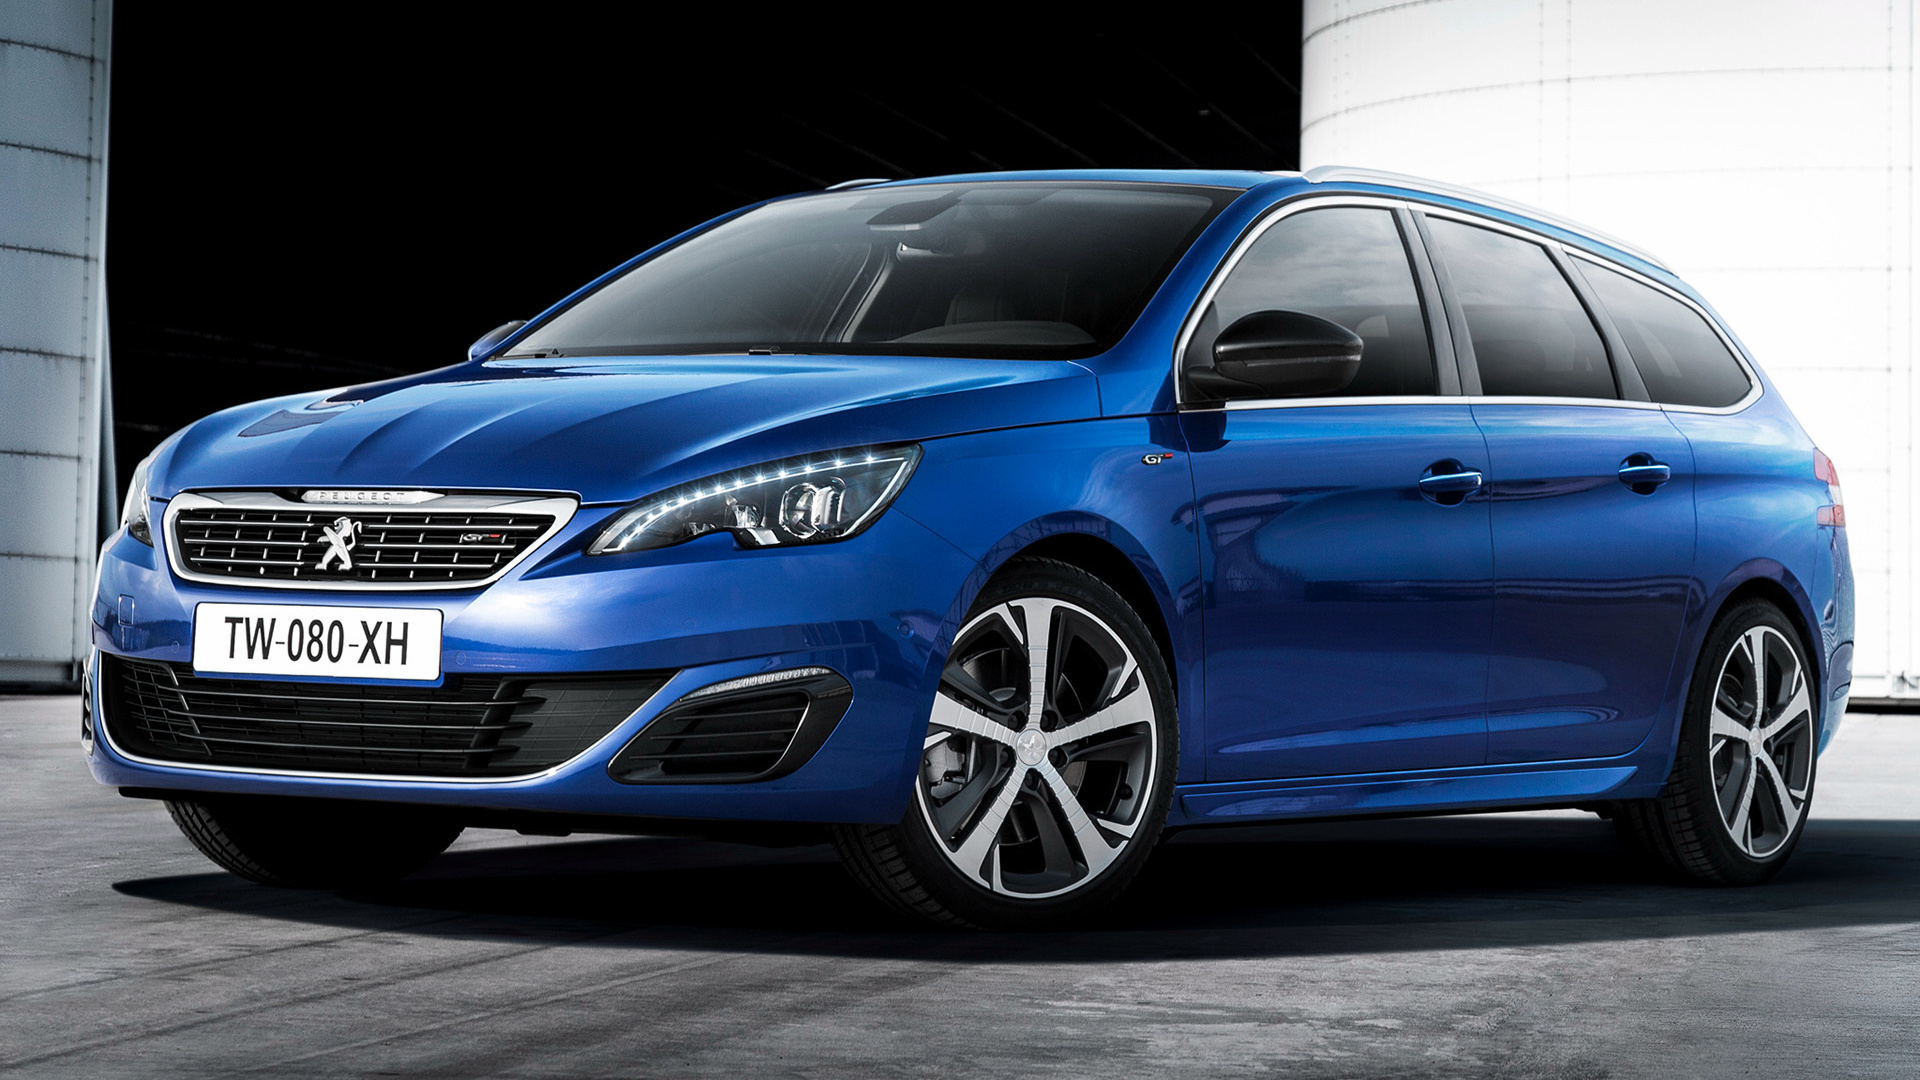 2014 Peugeot 308 Gt Sw Wallpapers And Hd Images Car Pixel